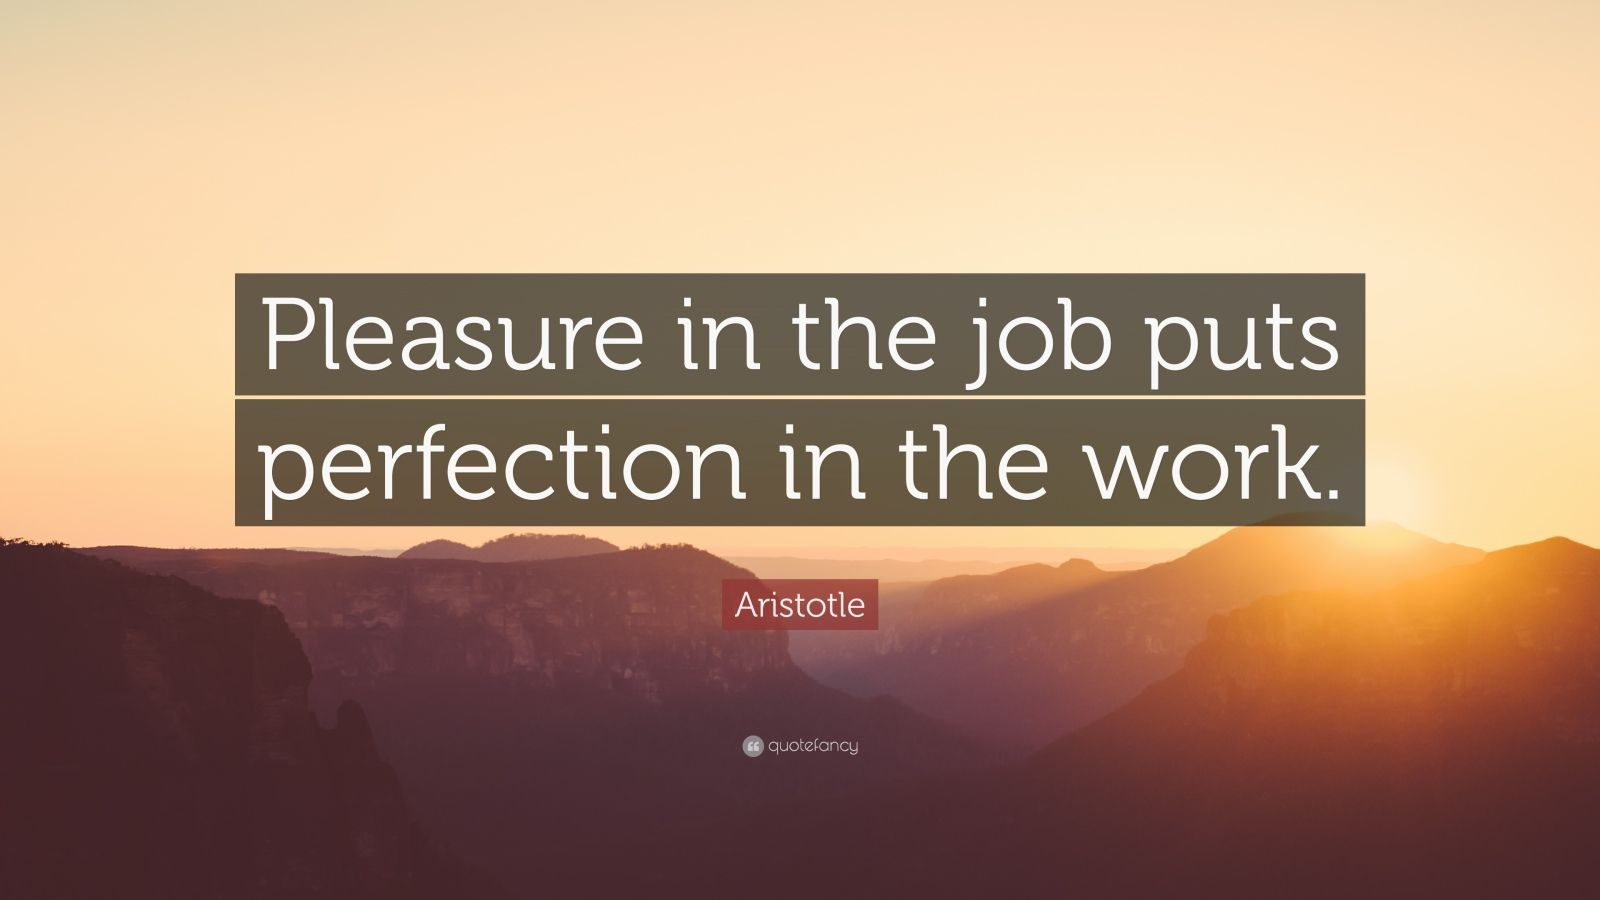 aristotle quote   u201cpleasure in the job puts perfection in